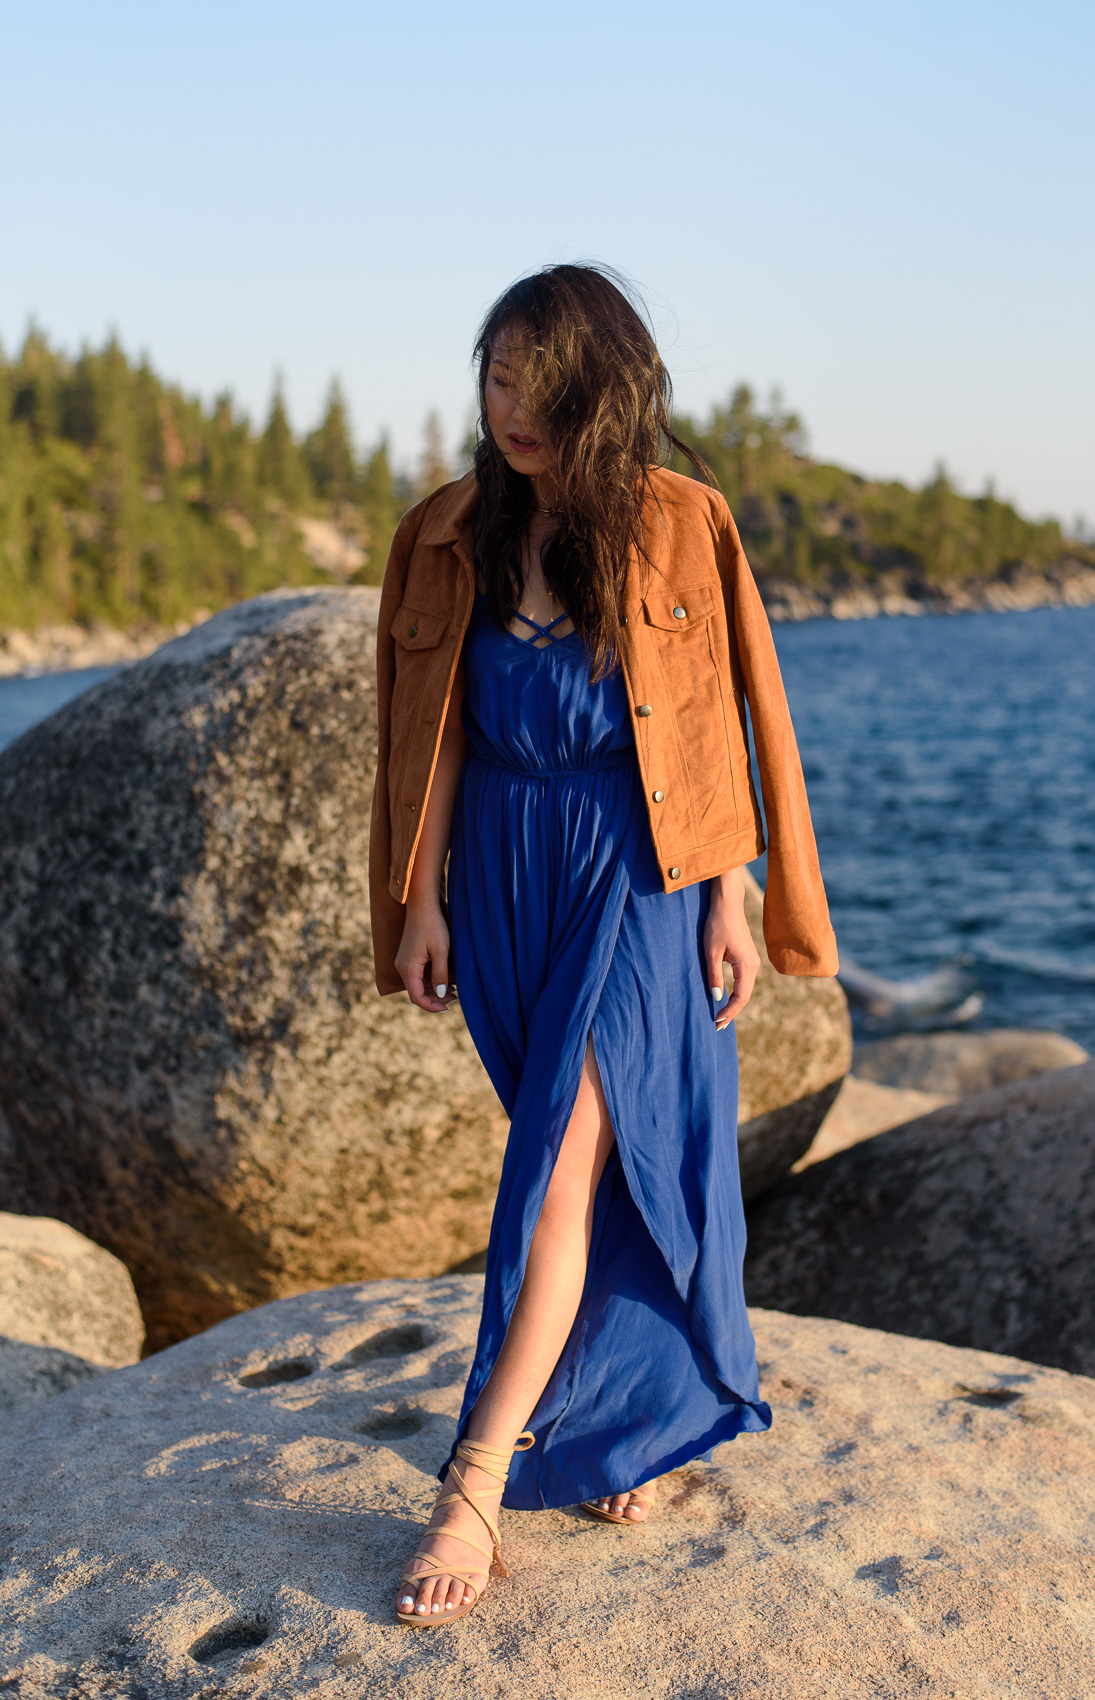 Tahoe For Sale >> #OOTD: Lake Tahoe - The Fancy Pants Report | San Francisco Fashion Blog